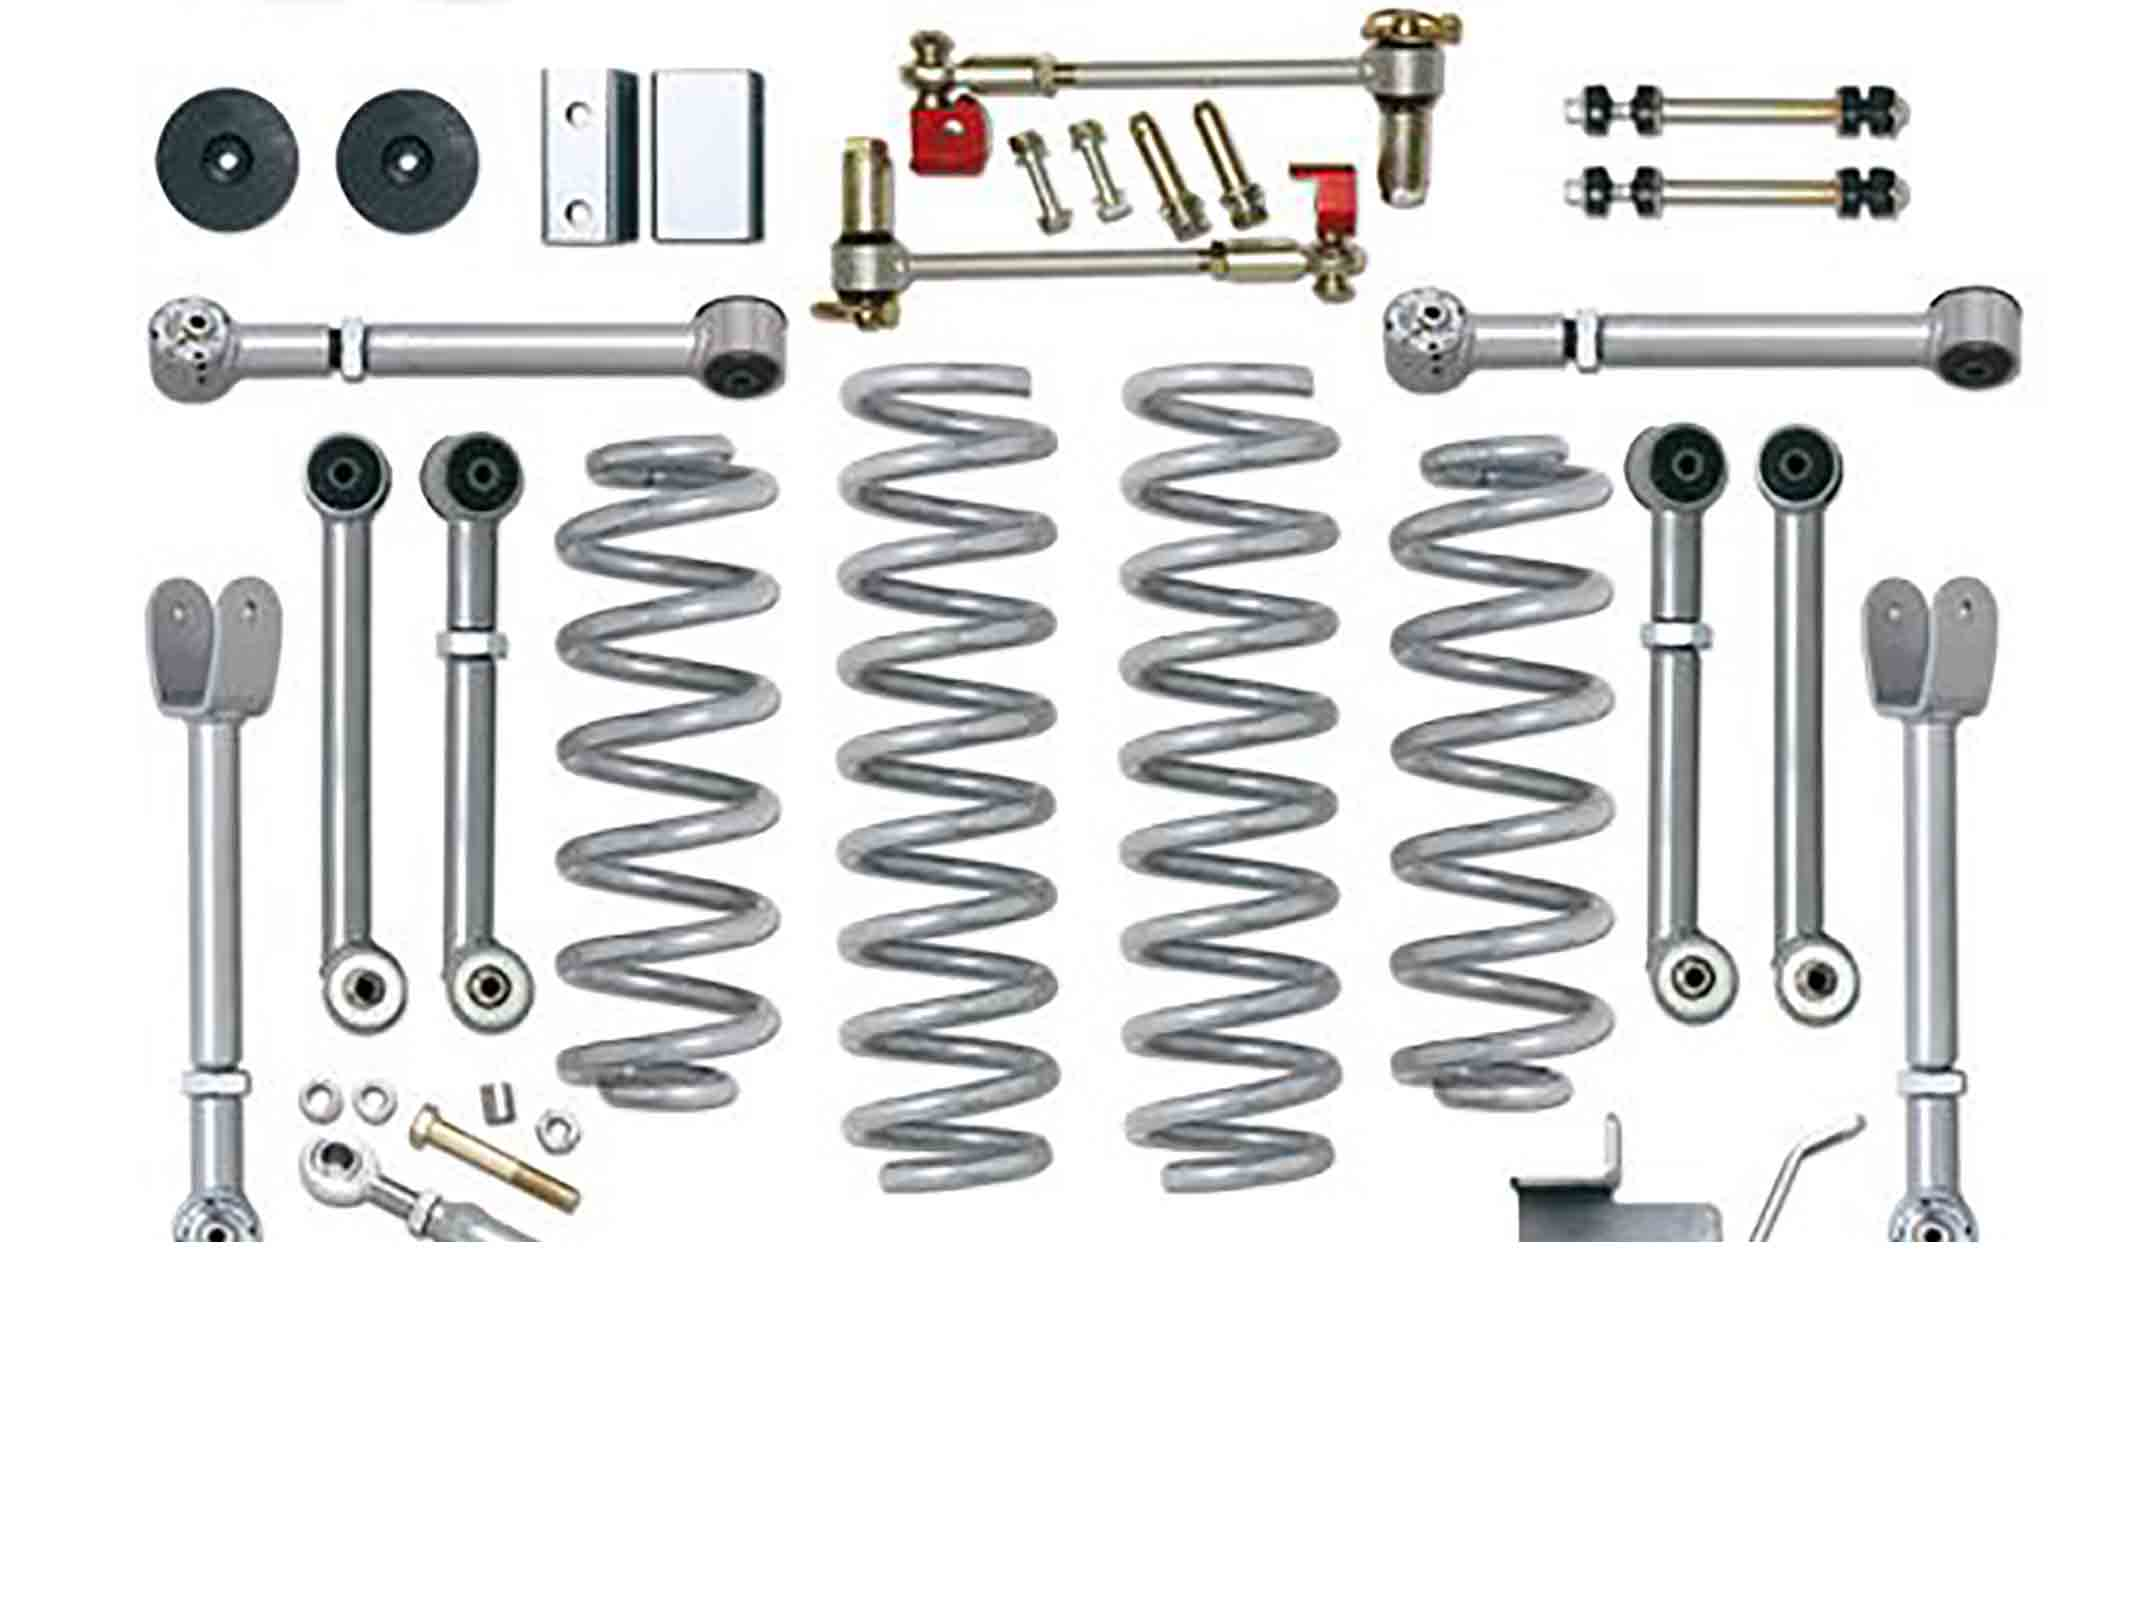 Super flex short arm kit grand cherokee zj zg 92 98  + 4,5 = 115mm ricambi jeep